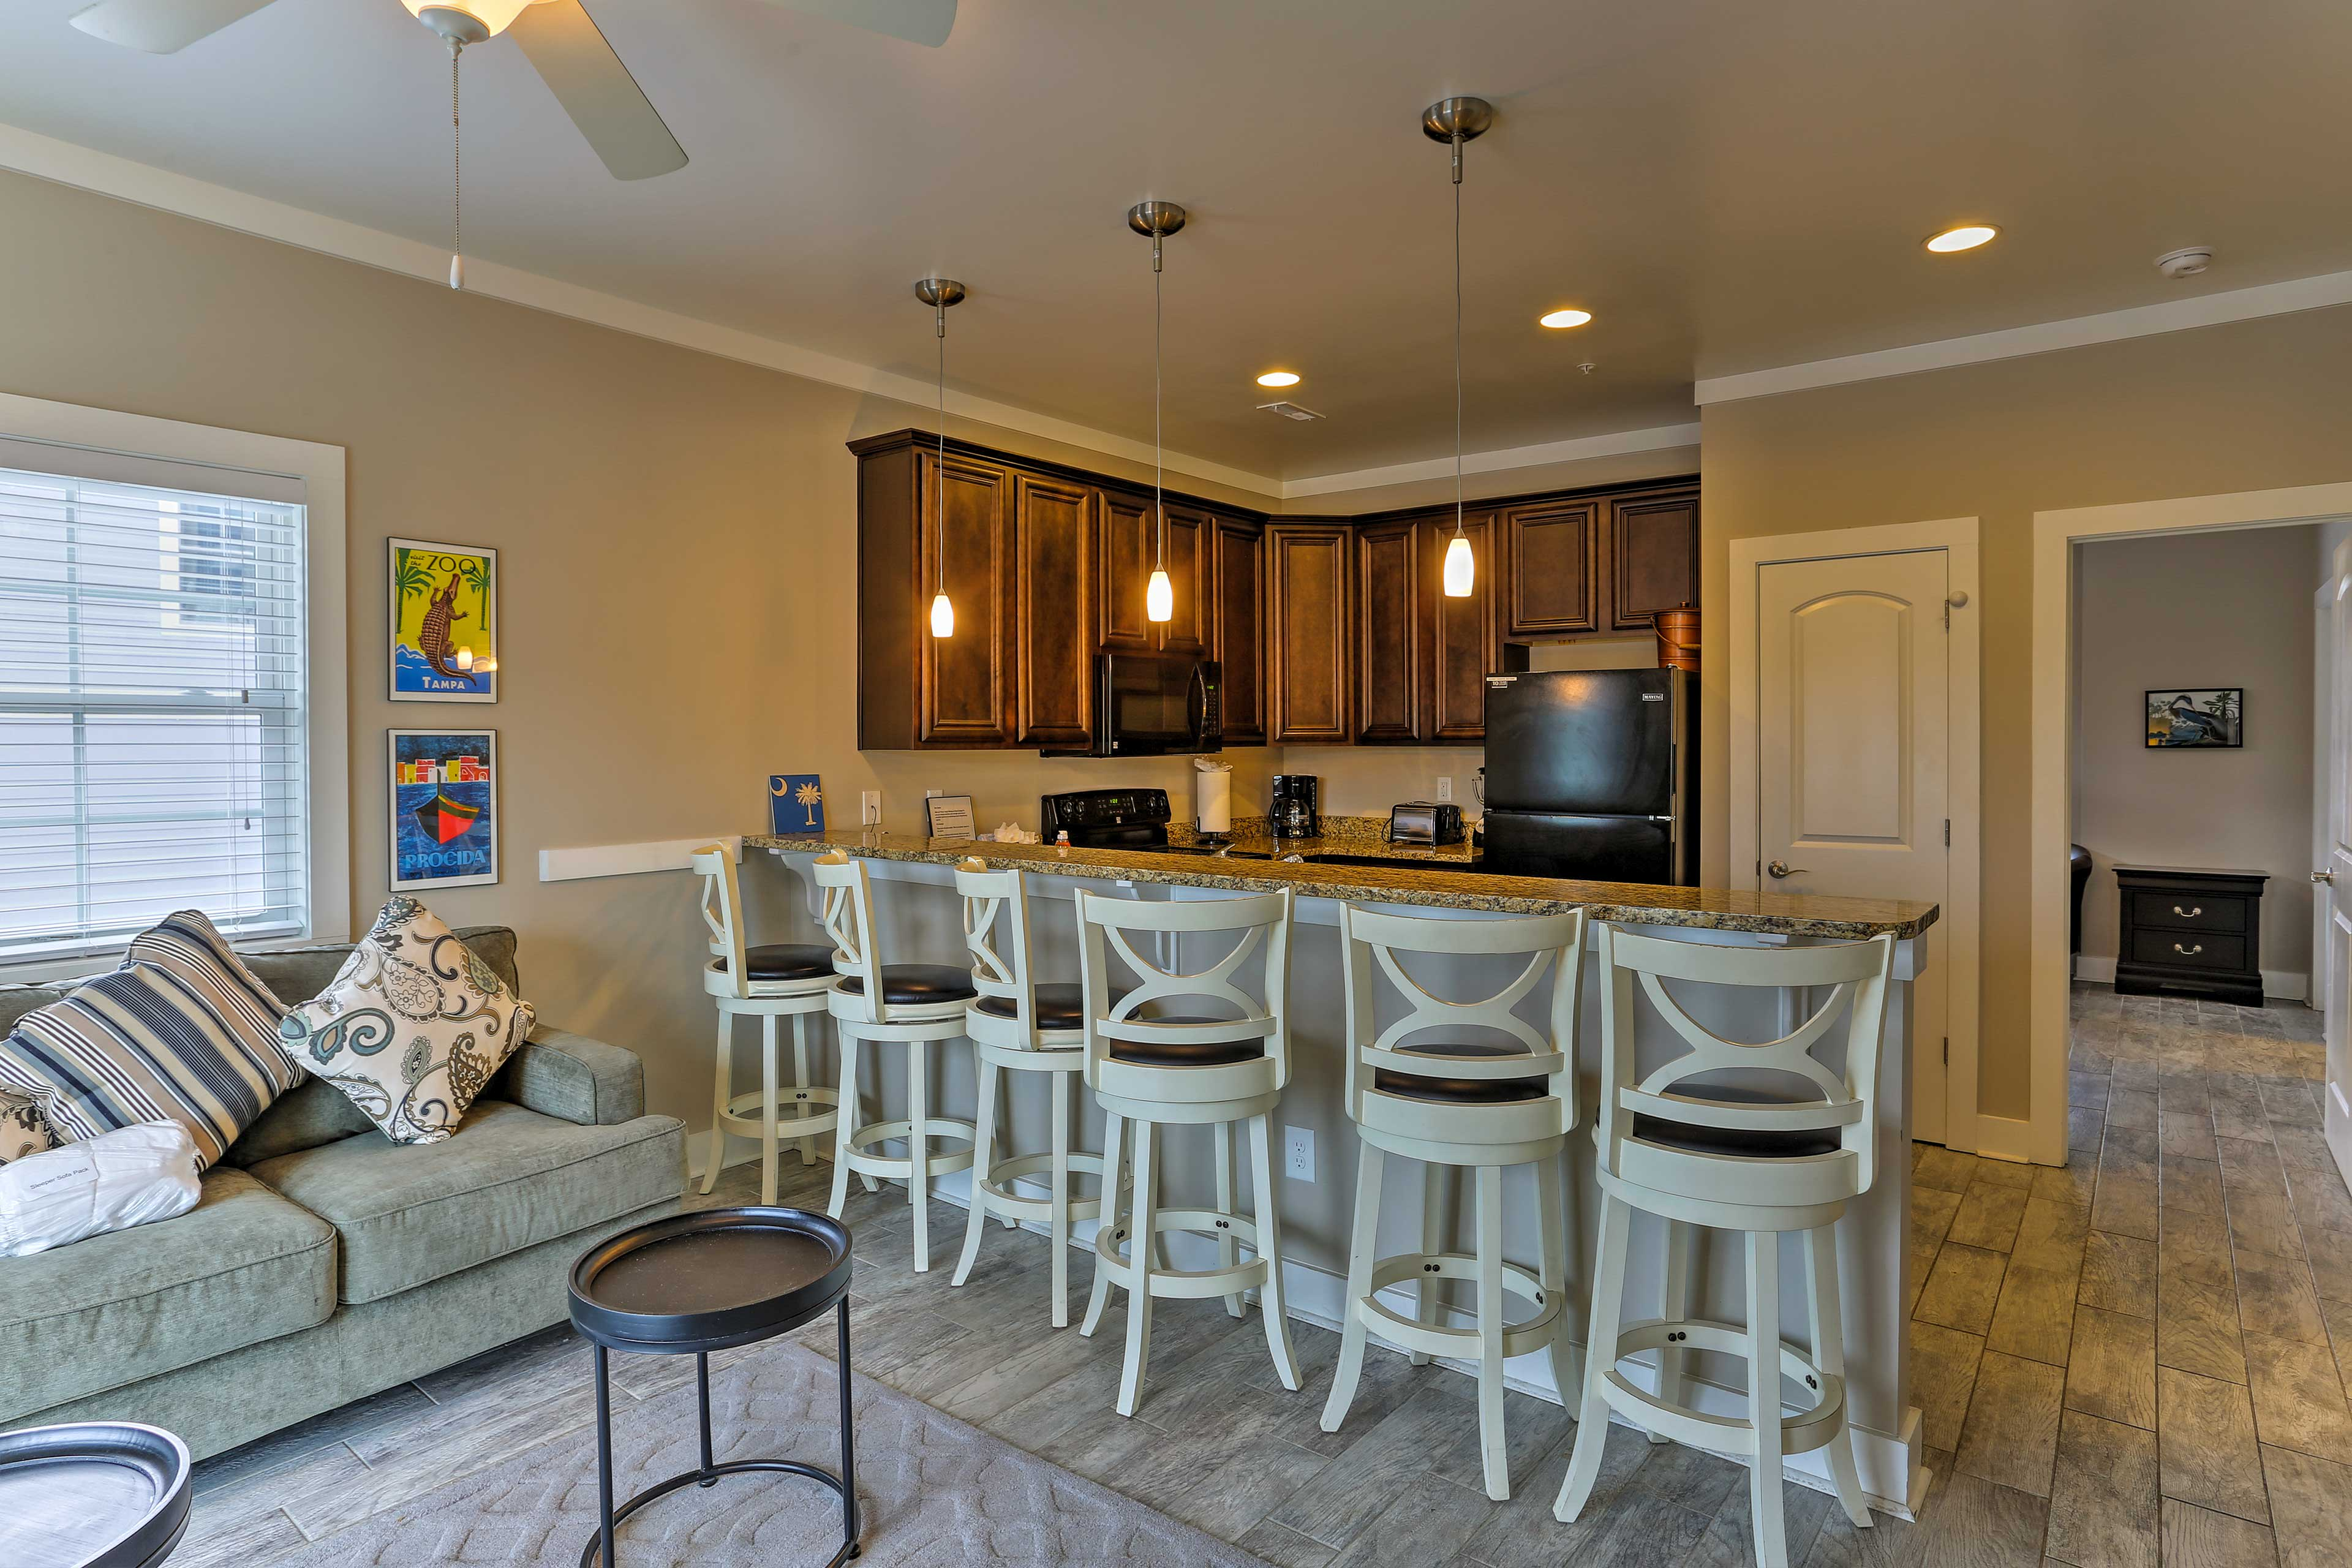 Snack and sip at the generous 6-person kitchen bar!